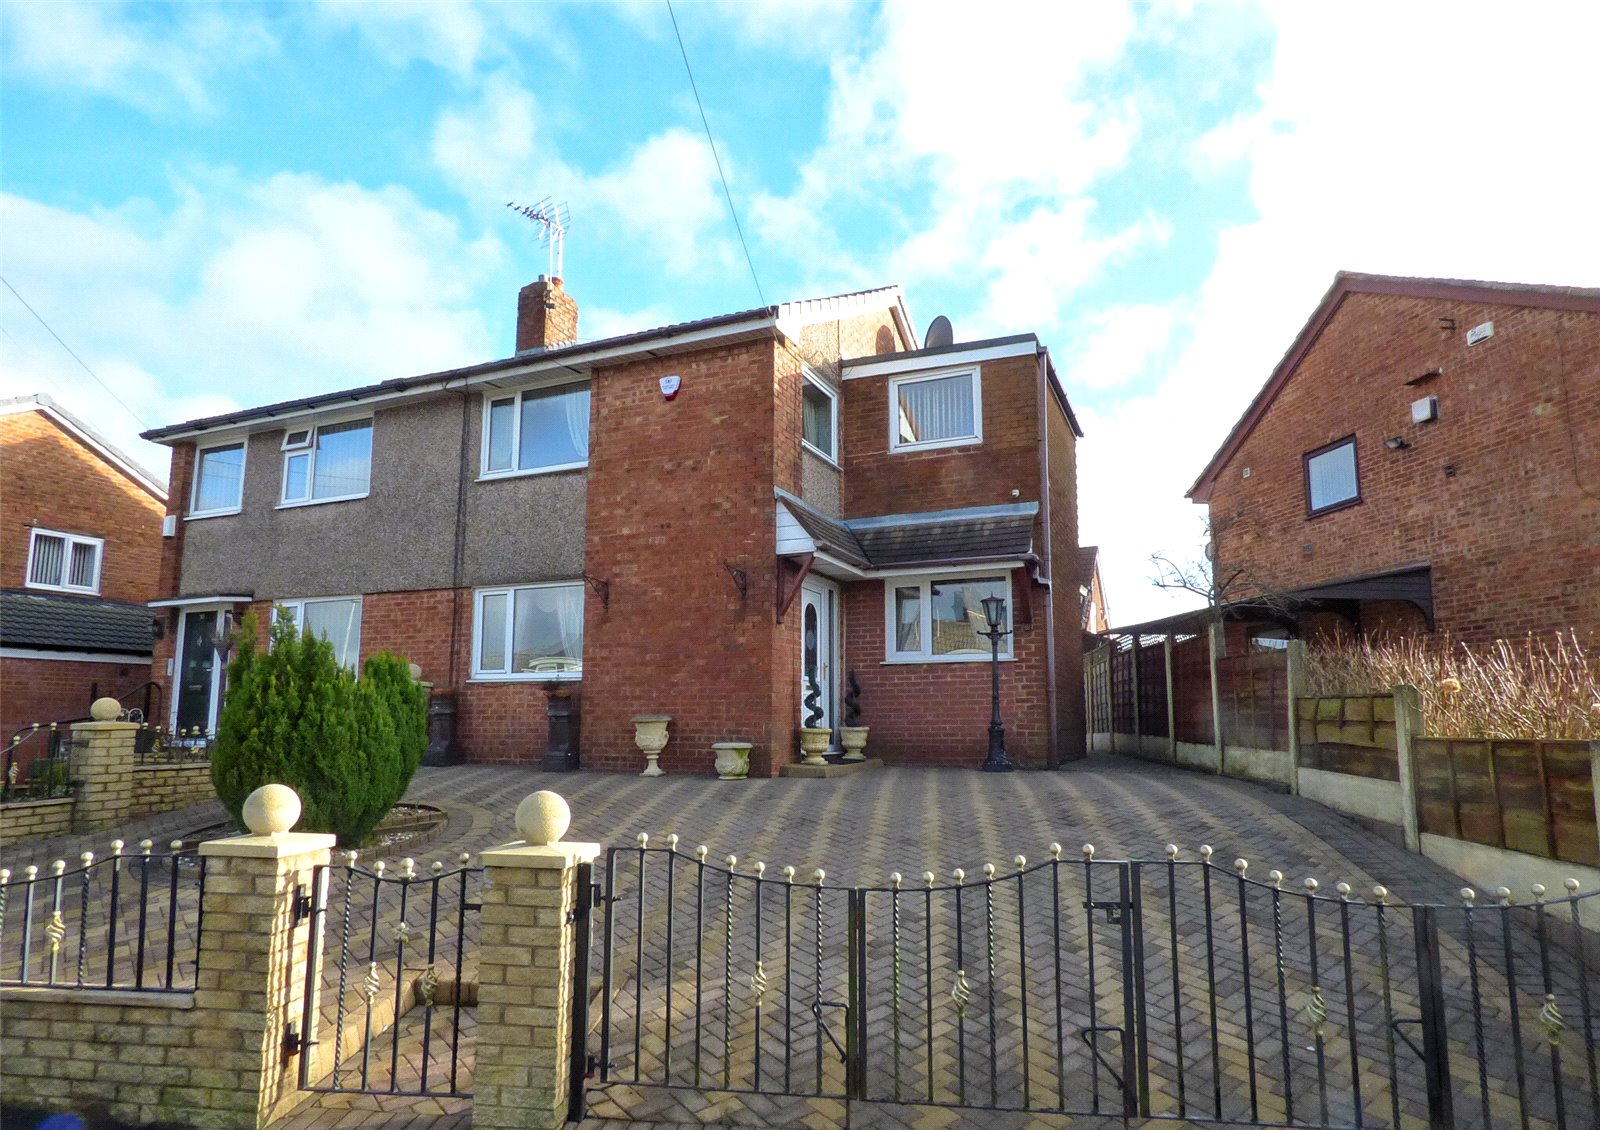 4 Bedrooms Semi Detached House for sale in Devonport Crescent, Royton, Oldham, Greater Manchester, OL2